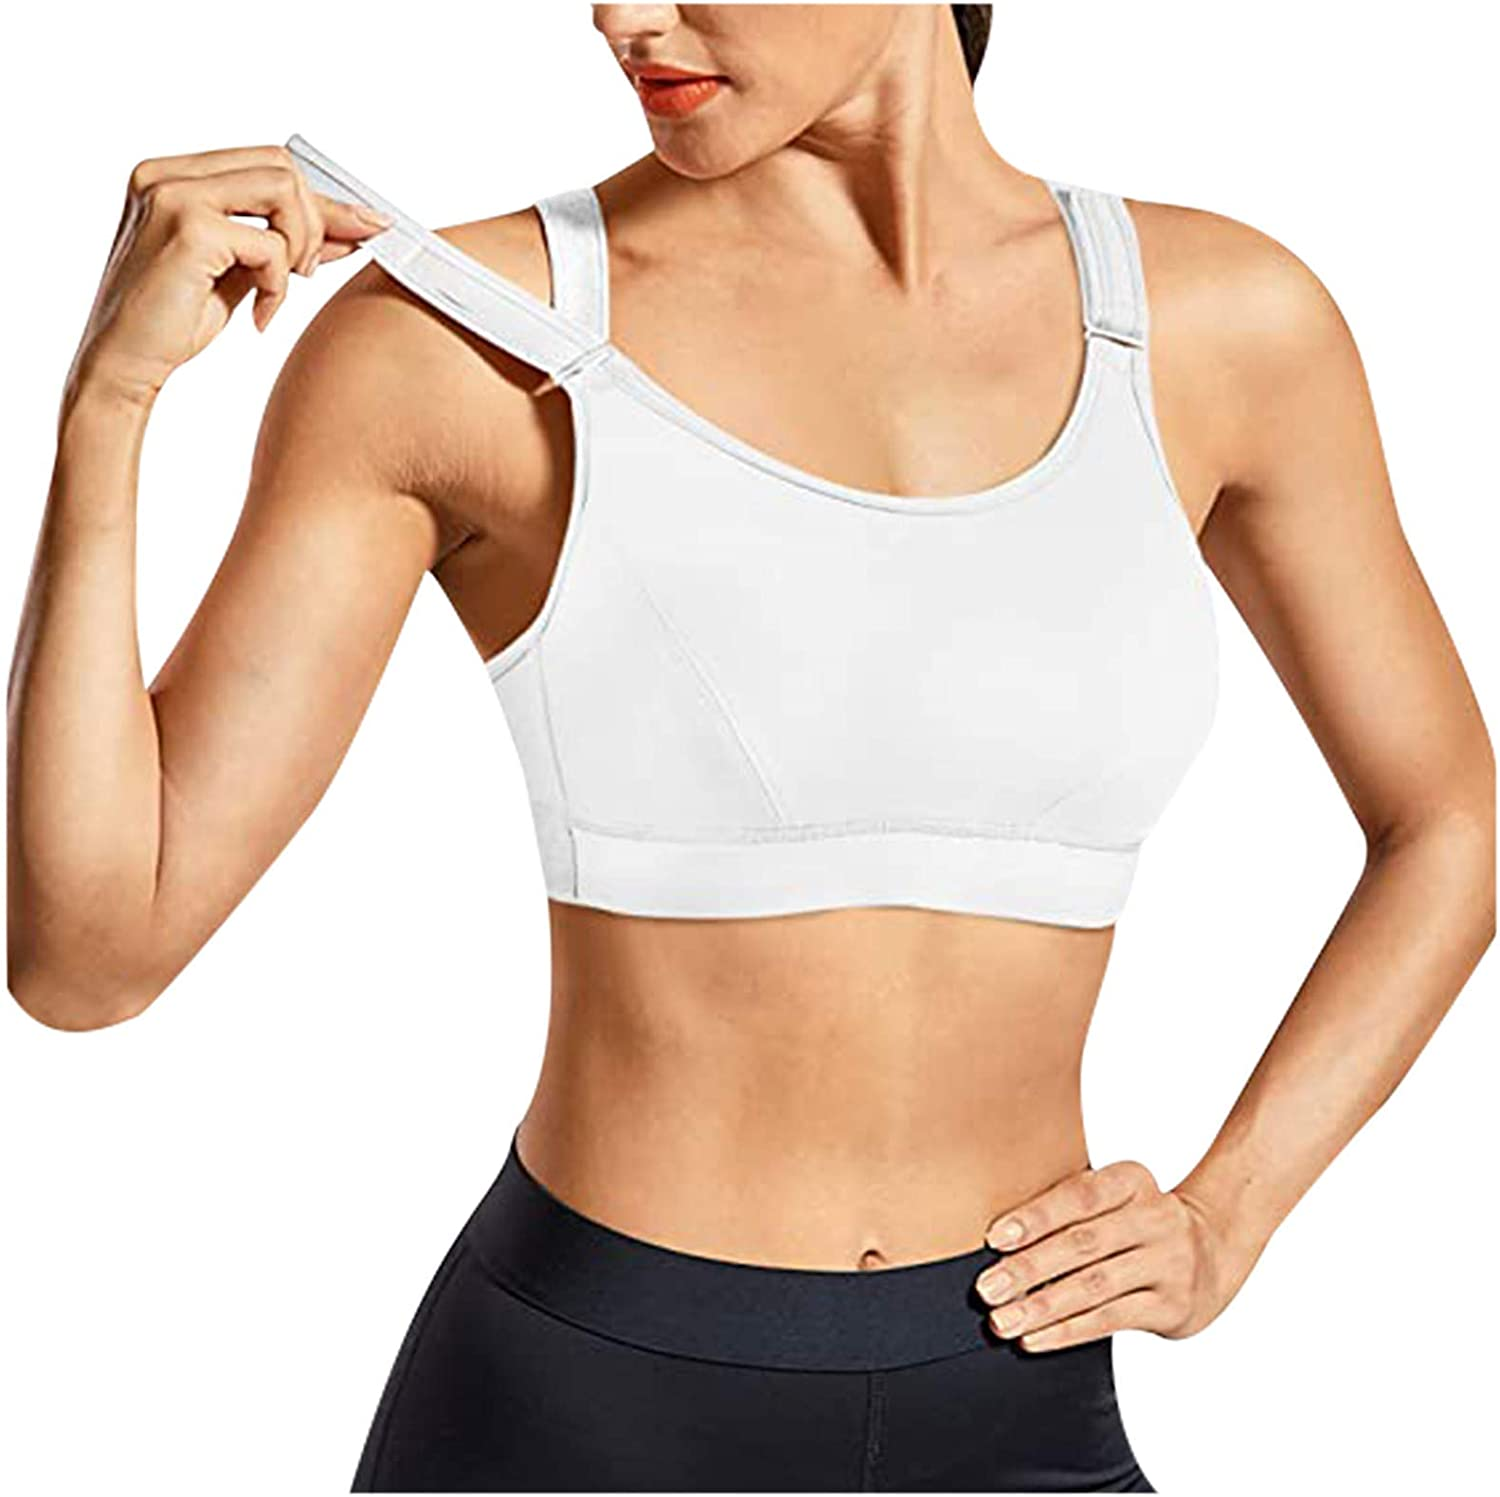 ZAKIO Women Padded Lingerie Sport Bra Fitness Workout Shirts Yoga Tank Top Running Gym Vest Solid Casual Blouse White